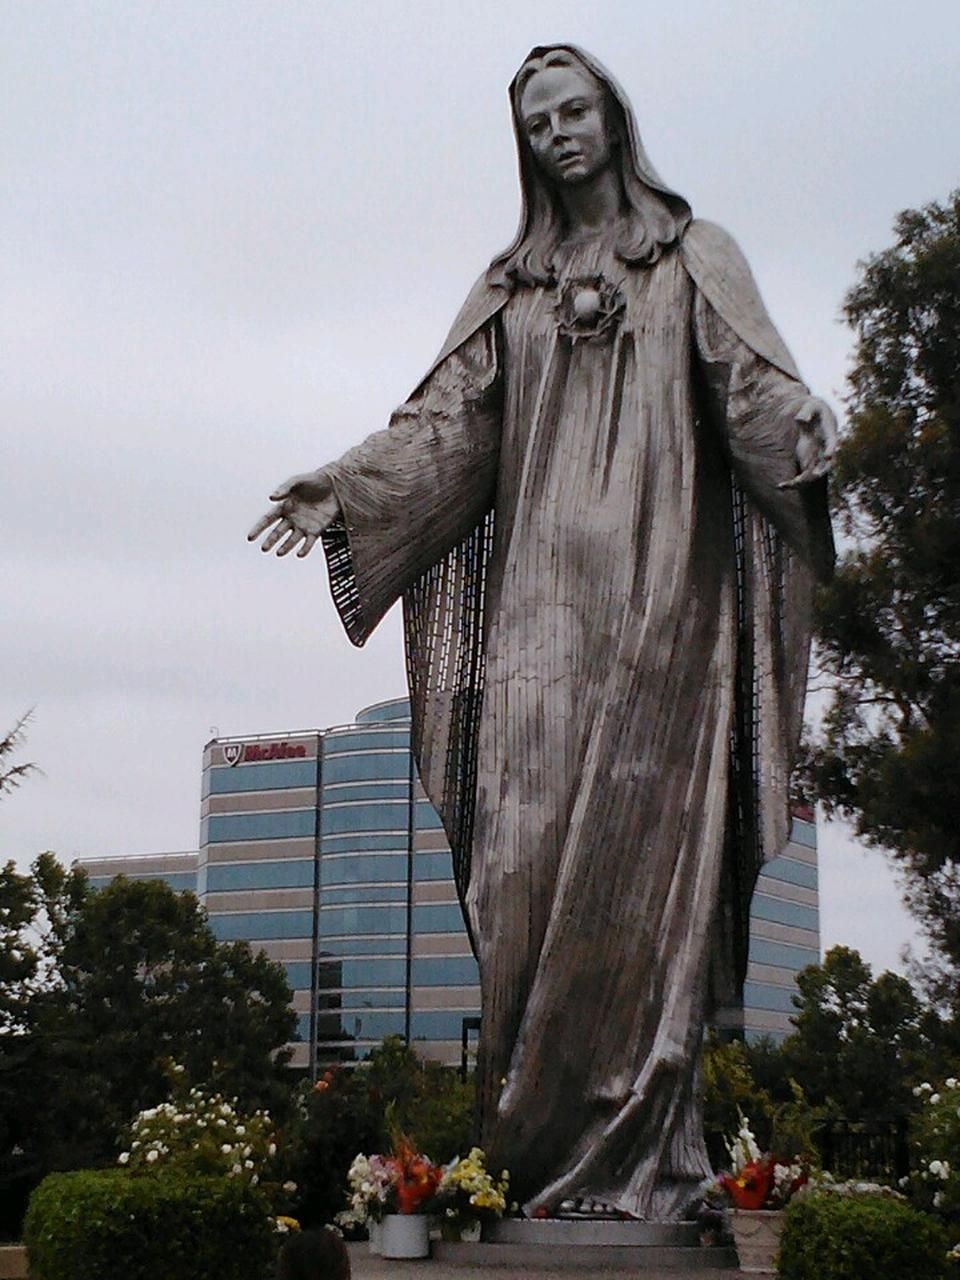 Our Lady Of Sorrows, Statue